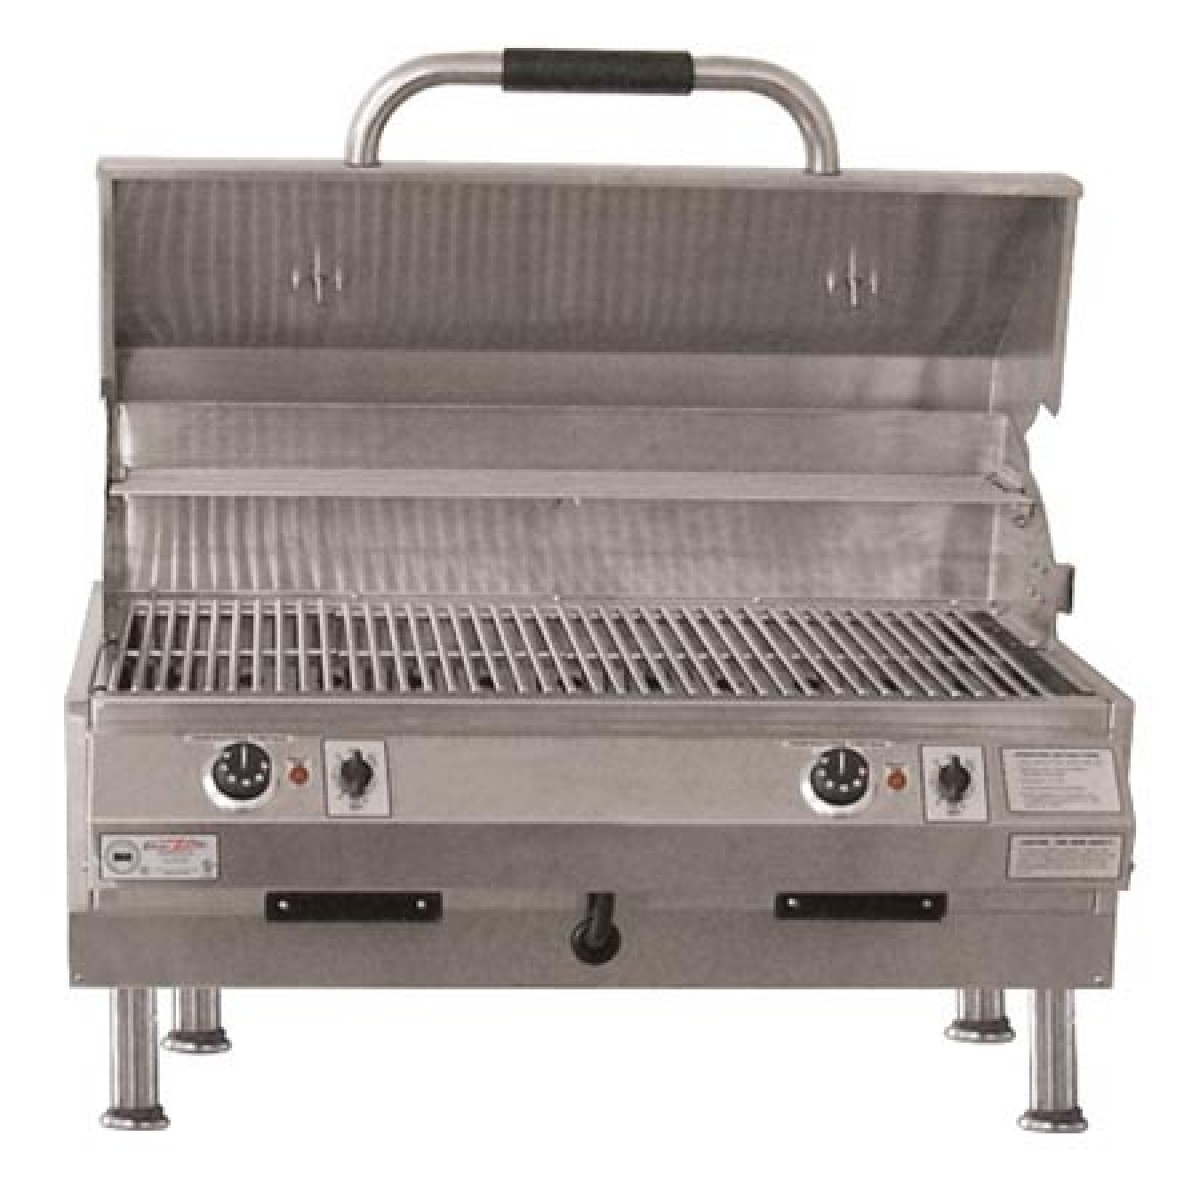 Electri chef 4400 series 32in table top barbecue grill w dual temp control ibuybarbecues - Table top barbecue grill ...